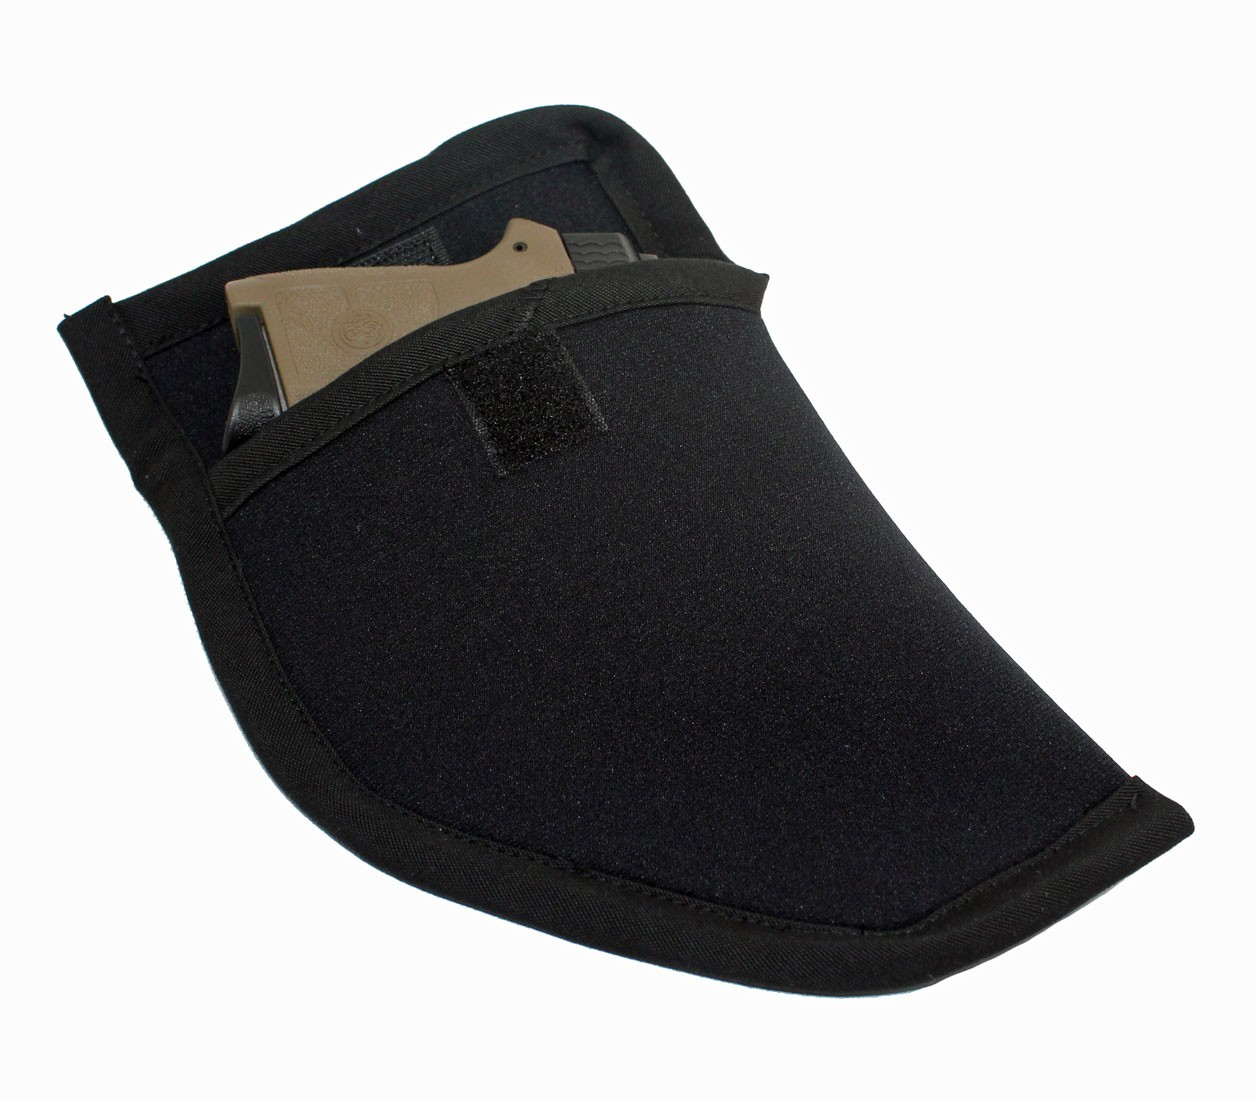 Gun Thinz (Micro) - Soft Neoprene Pistol Case by KSOL Power